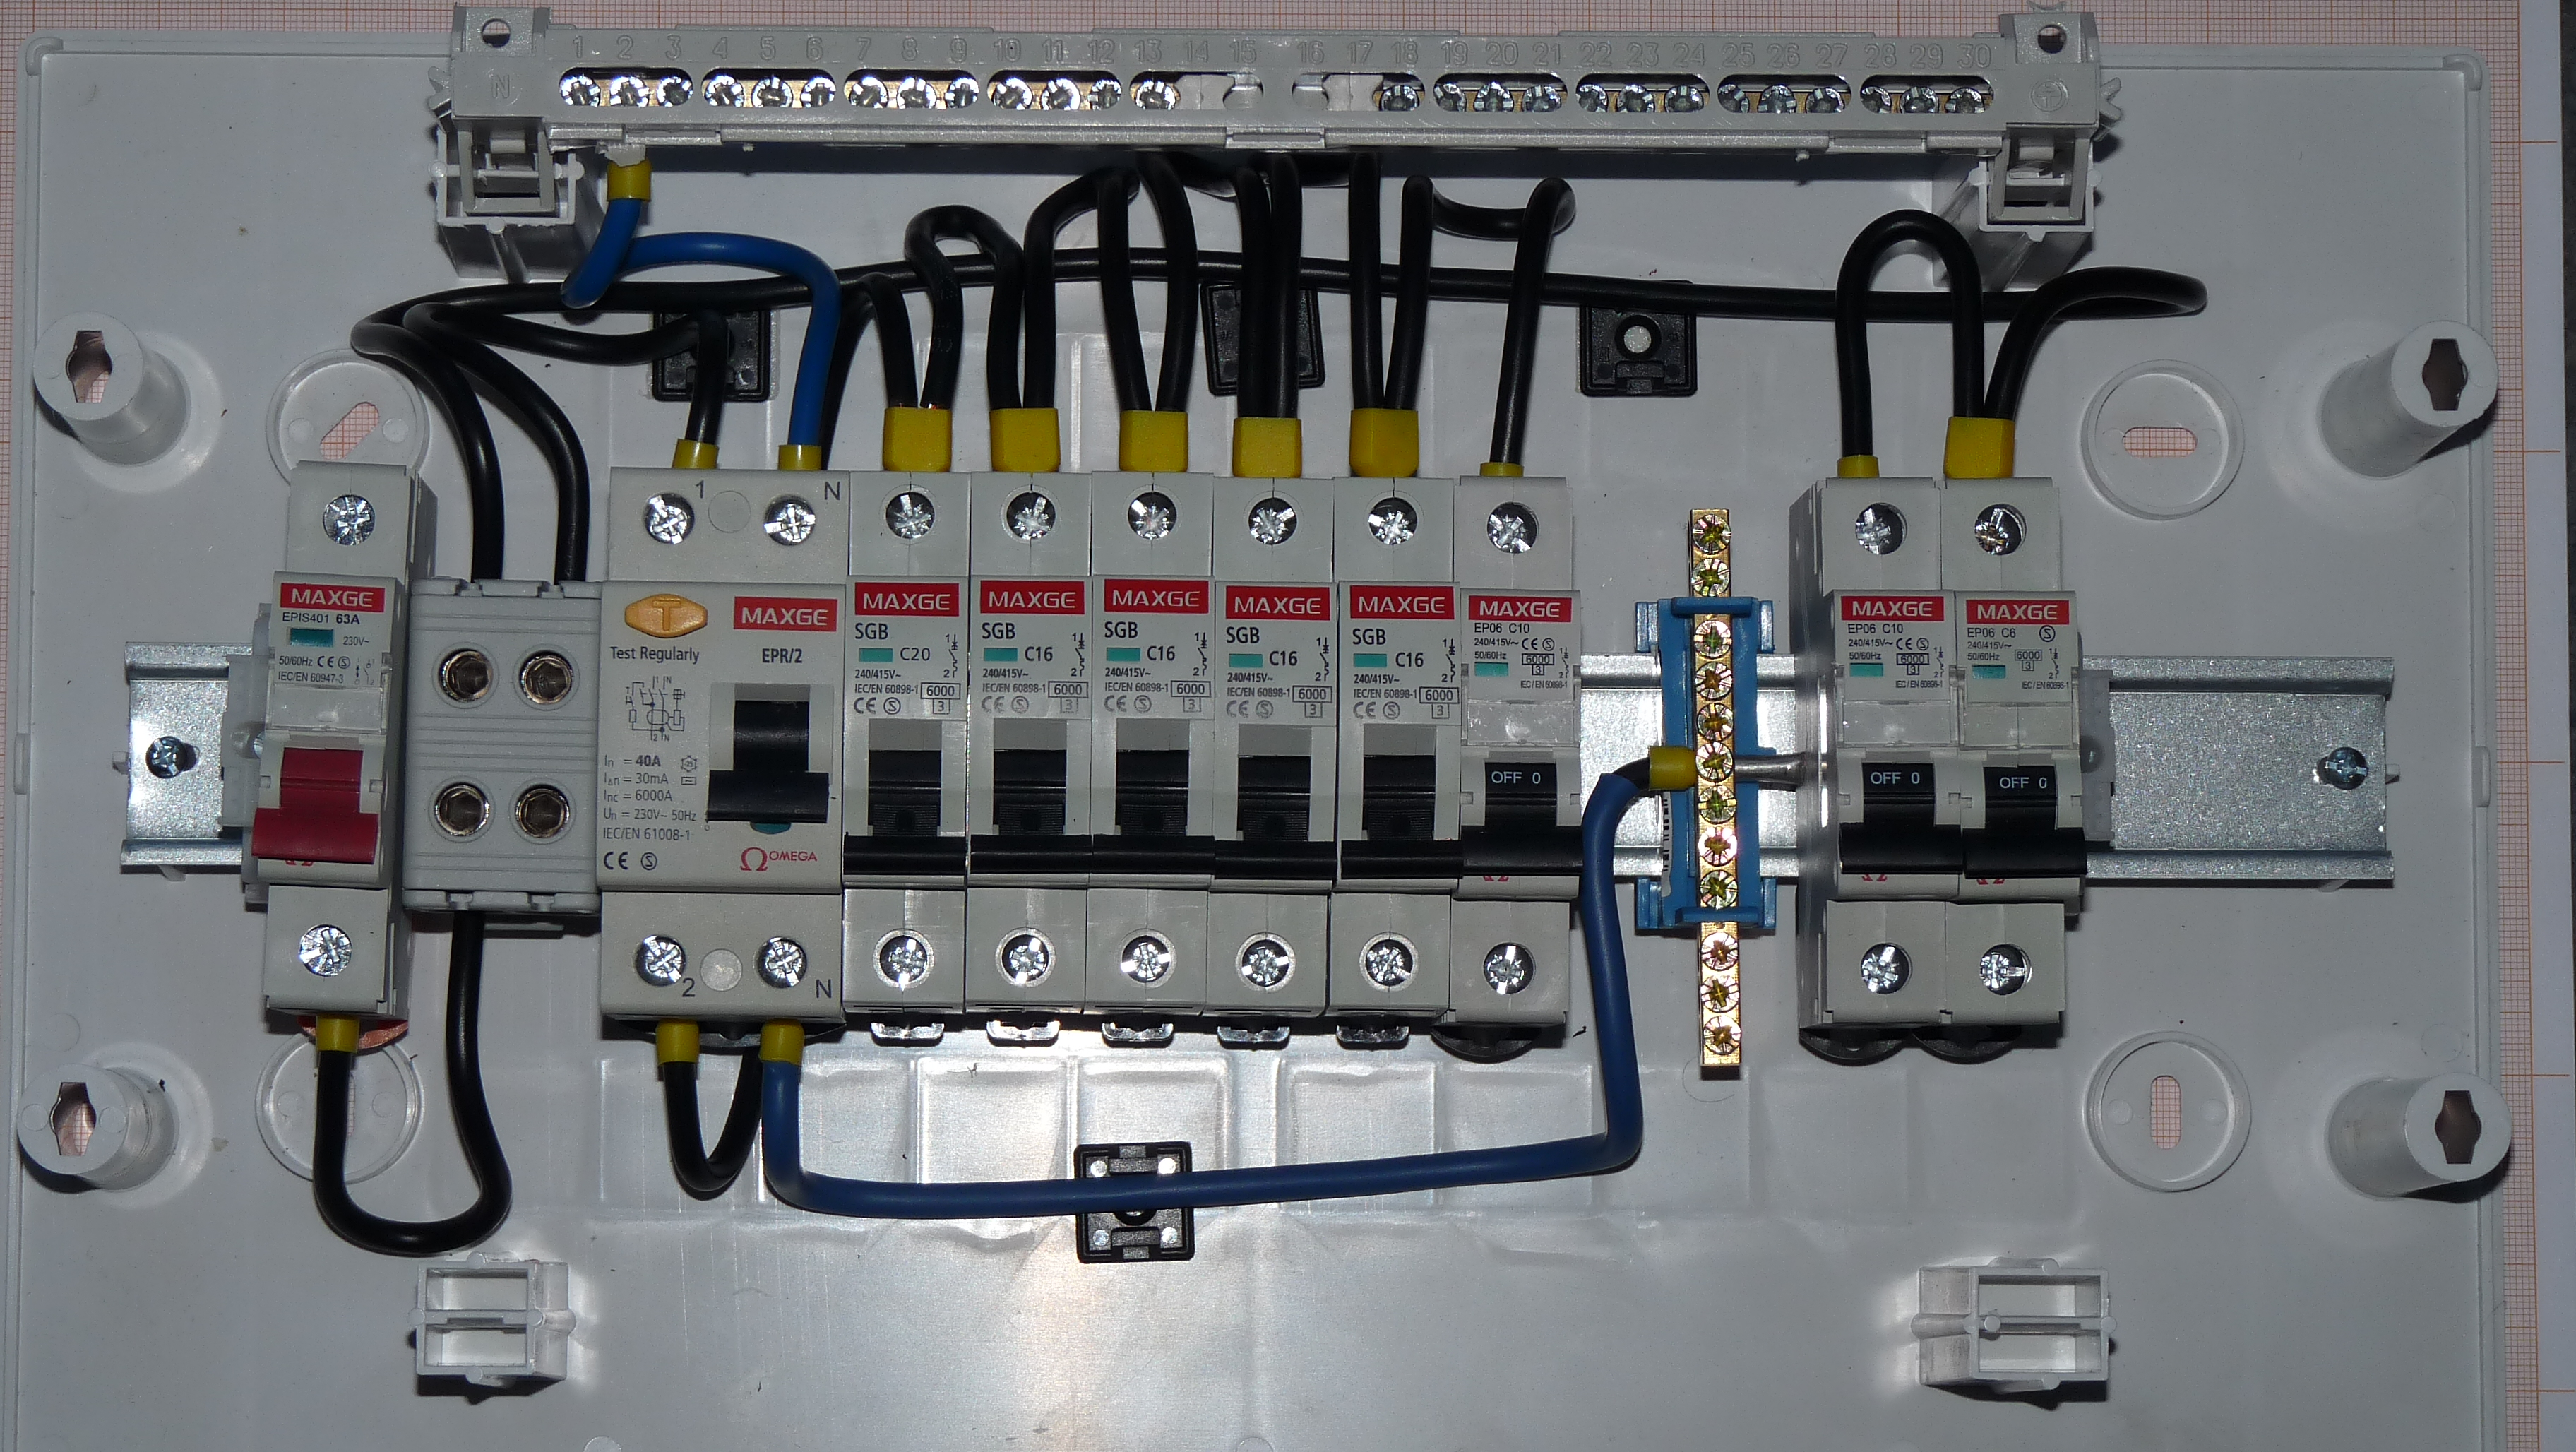 File:Ümera 12 - fuse box for apartment.JPG